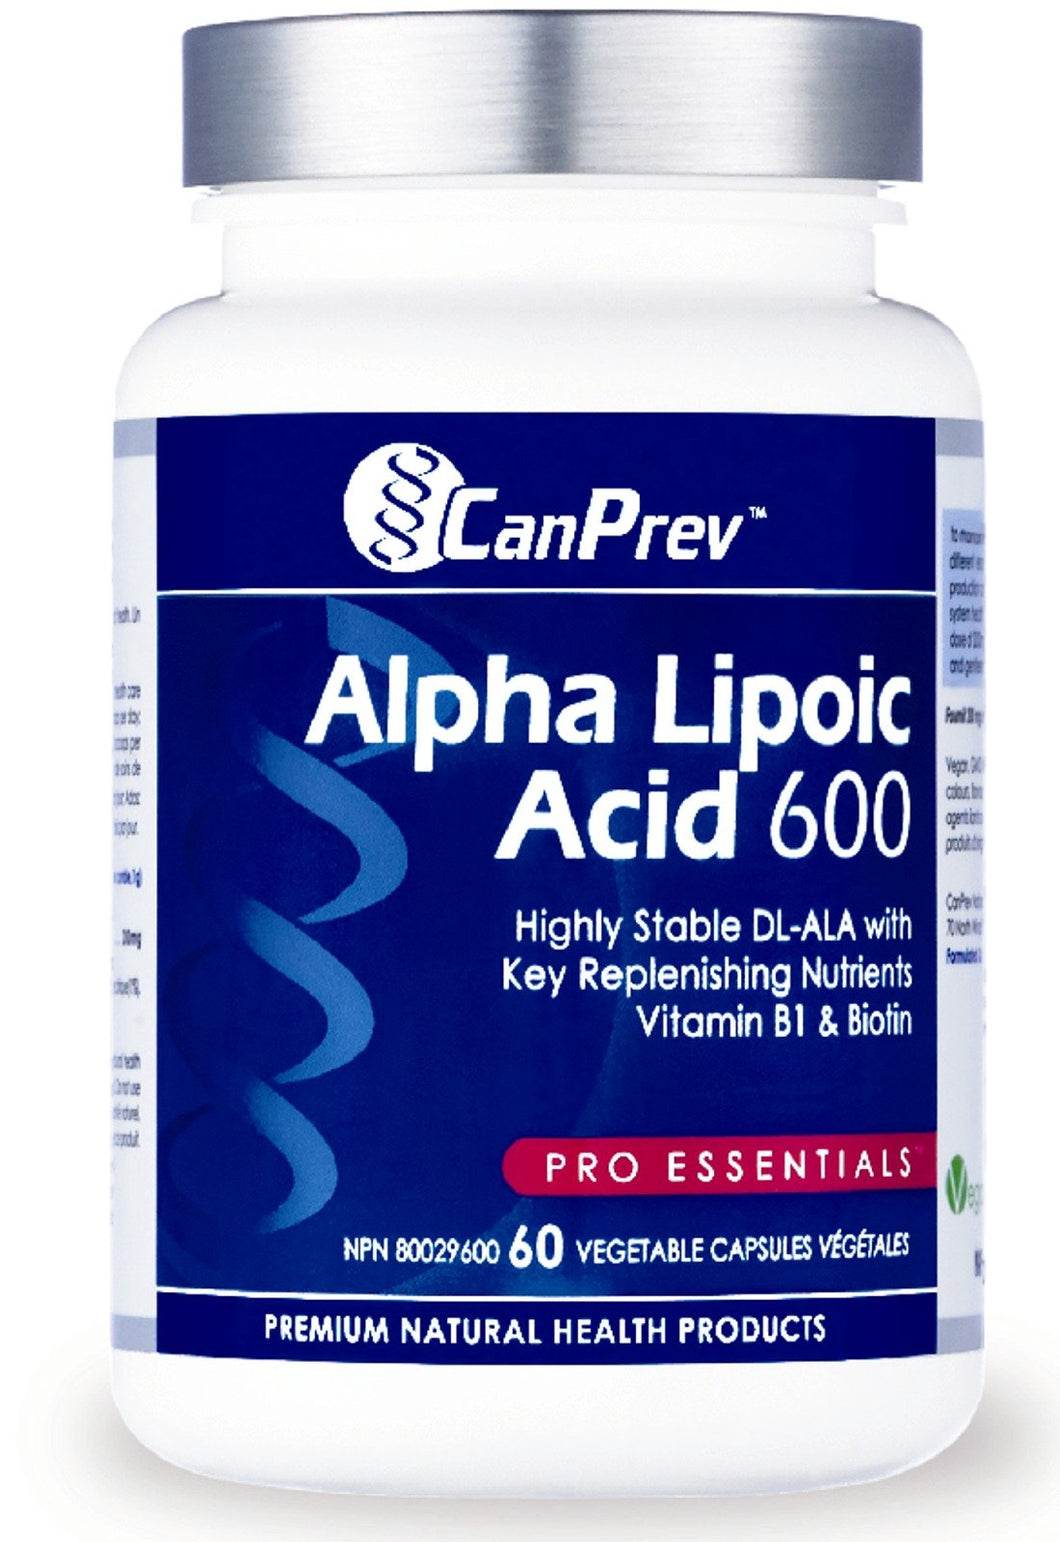 CANPREV Alpha Lipoic Acid 600 mg (60 caps)